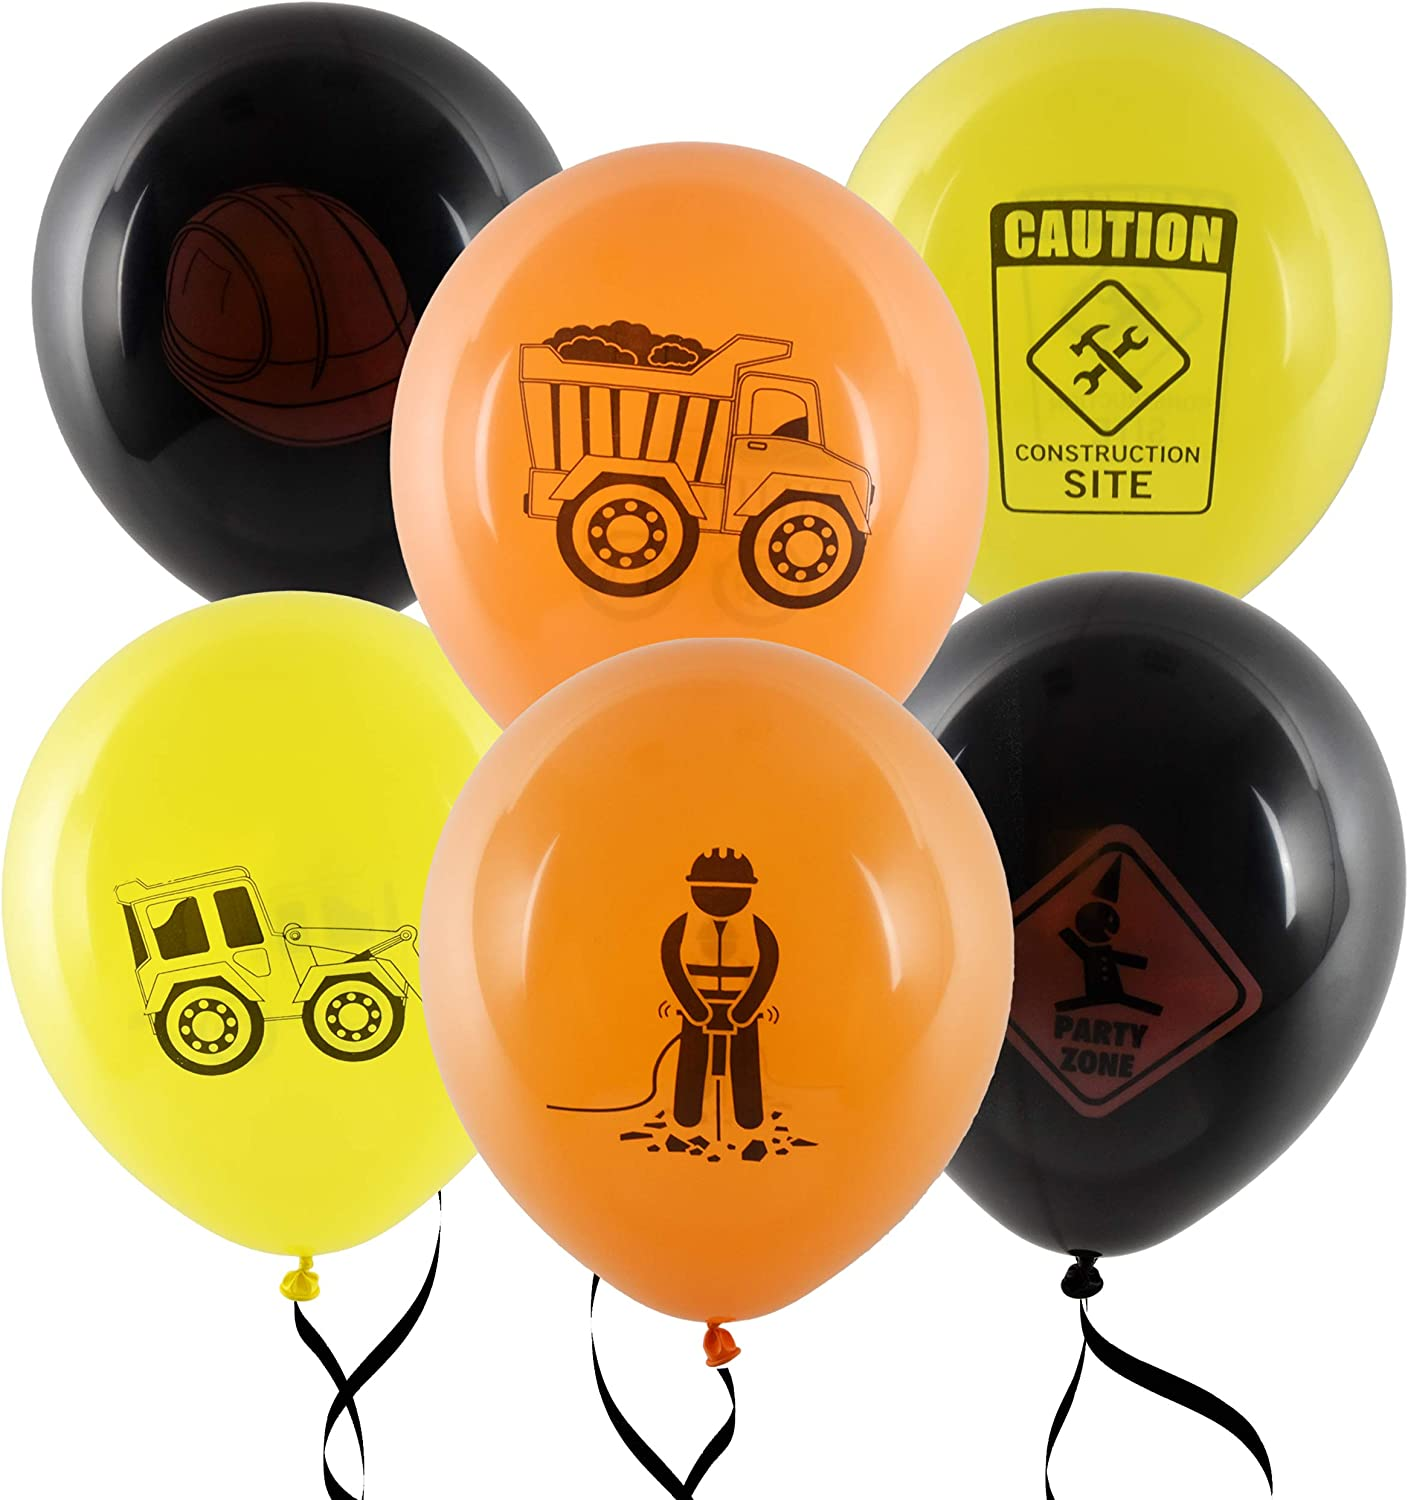 "36 Construction Balloons 12/"" Latex Balloon Yellow and Black Construction Zone Builder Balloon For Kids Birthday Party Favor Supplies Decorations by Gift Boutique"